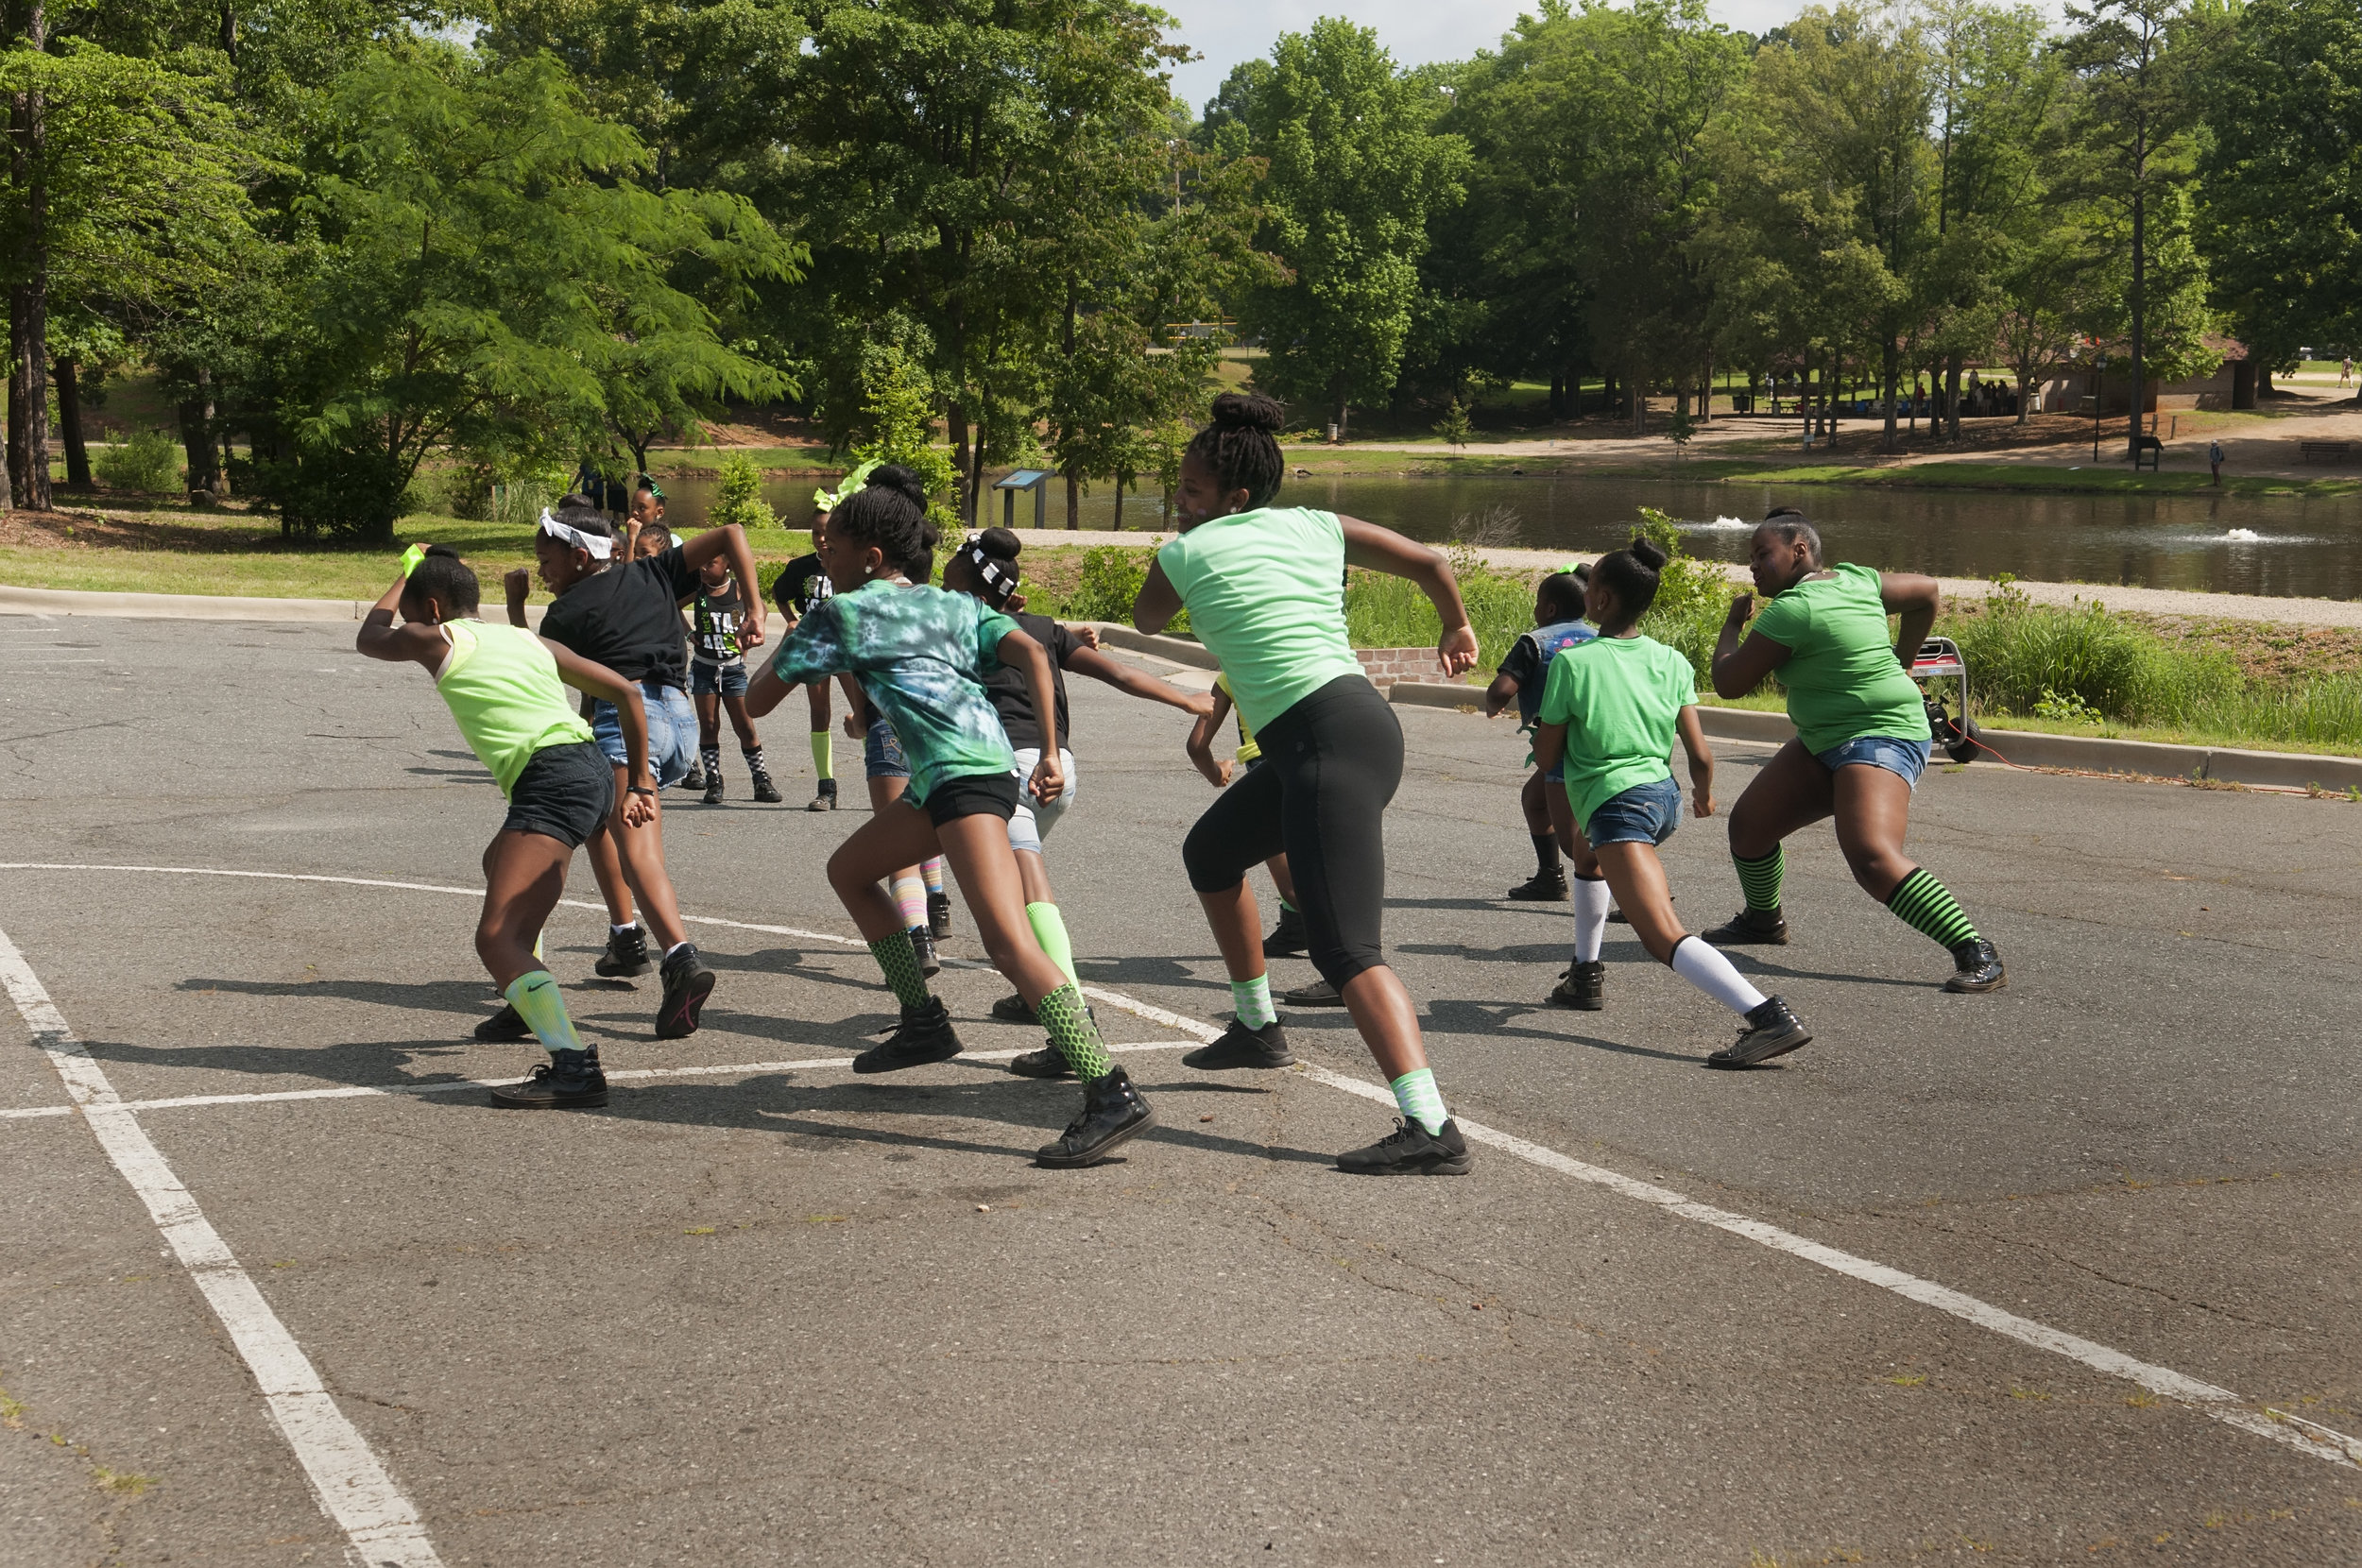 2nd Annual Let's Talk About It Mental Health Awareness Walk @ Park Rd Park 5-20-17 by Jon Strayhorn 091.jpg